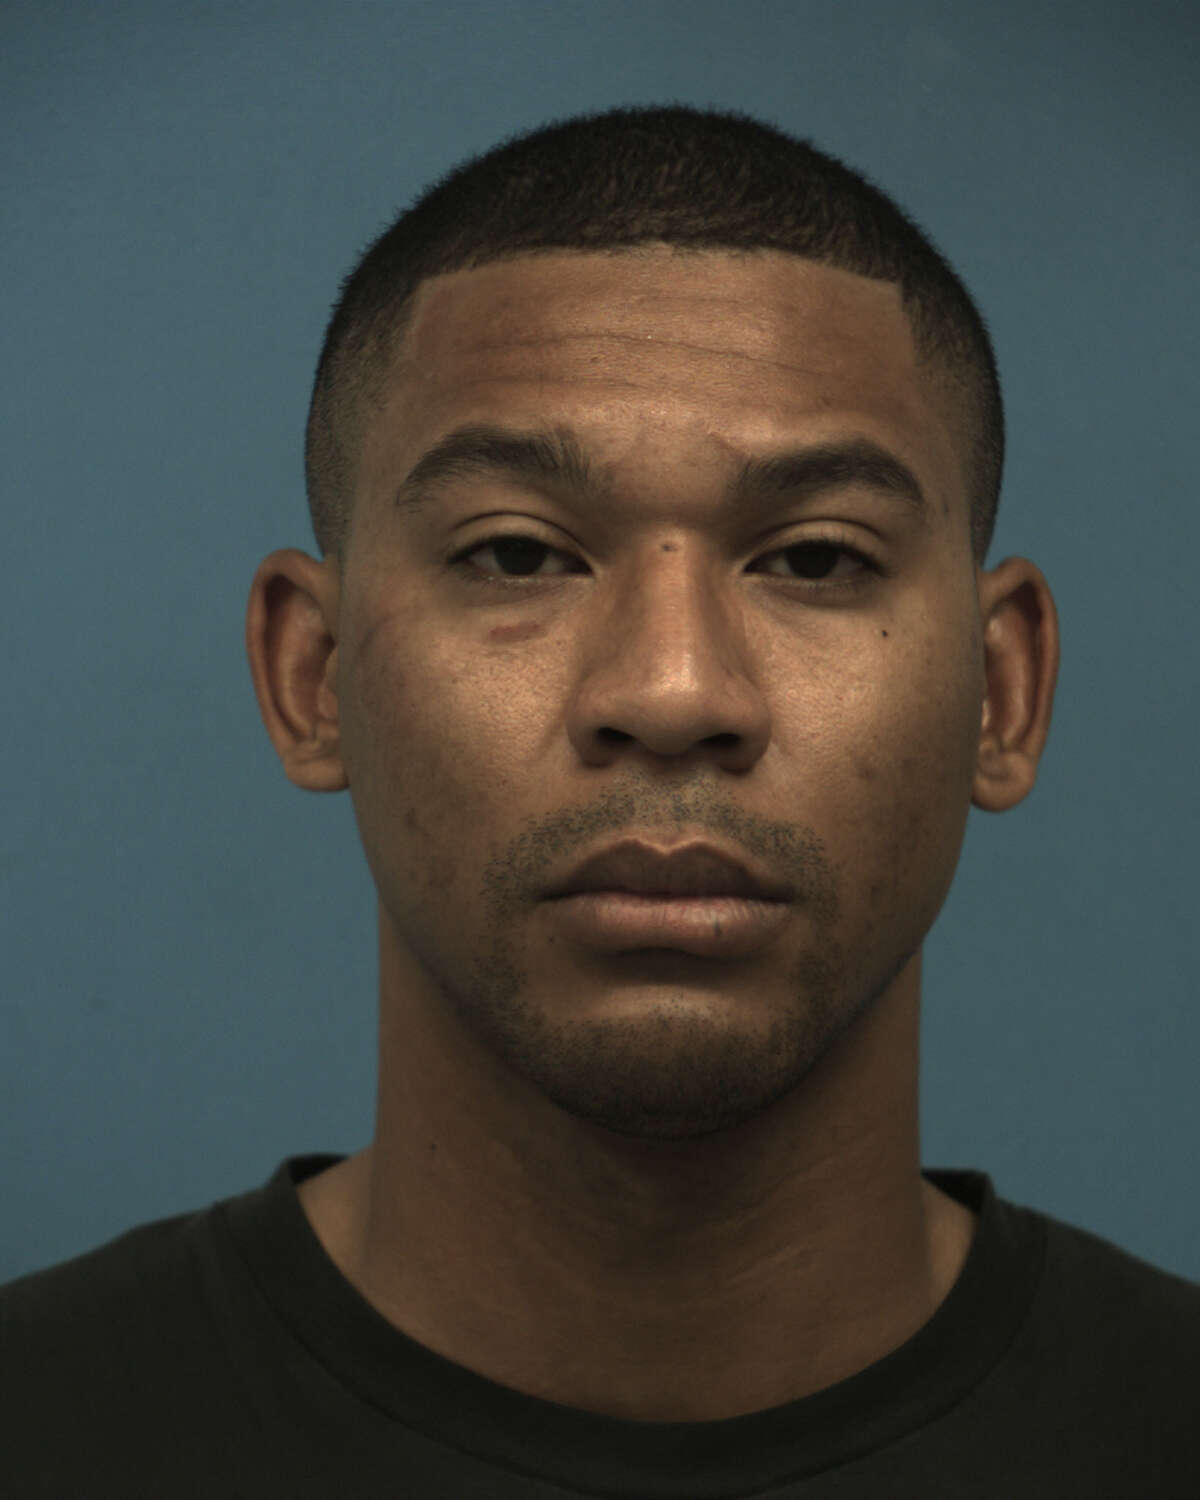 Mario Bernard Johnson, a 27-year-old Williamson County sheriff's deputy, was charged Sunday on with assault/family violence by house member impeding breathing/circulation, according to Williamson County Jail records. Johnson allegedly choked his girlfriend during an argument.